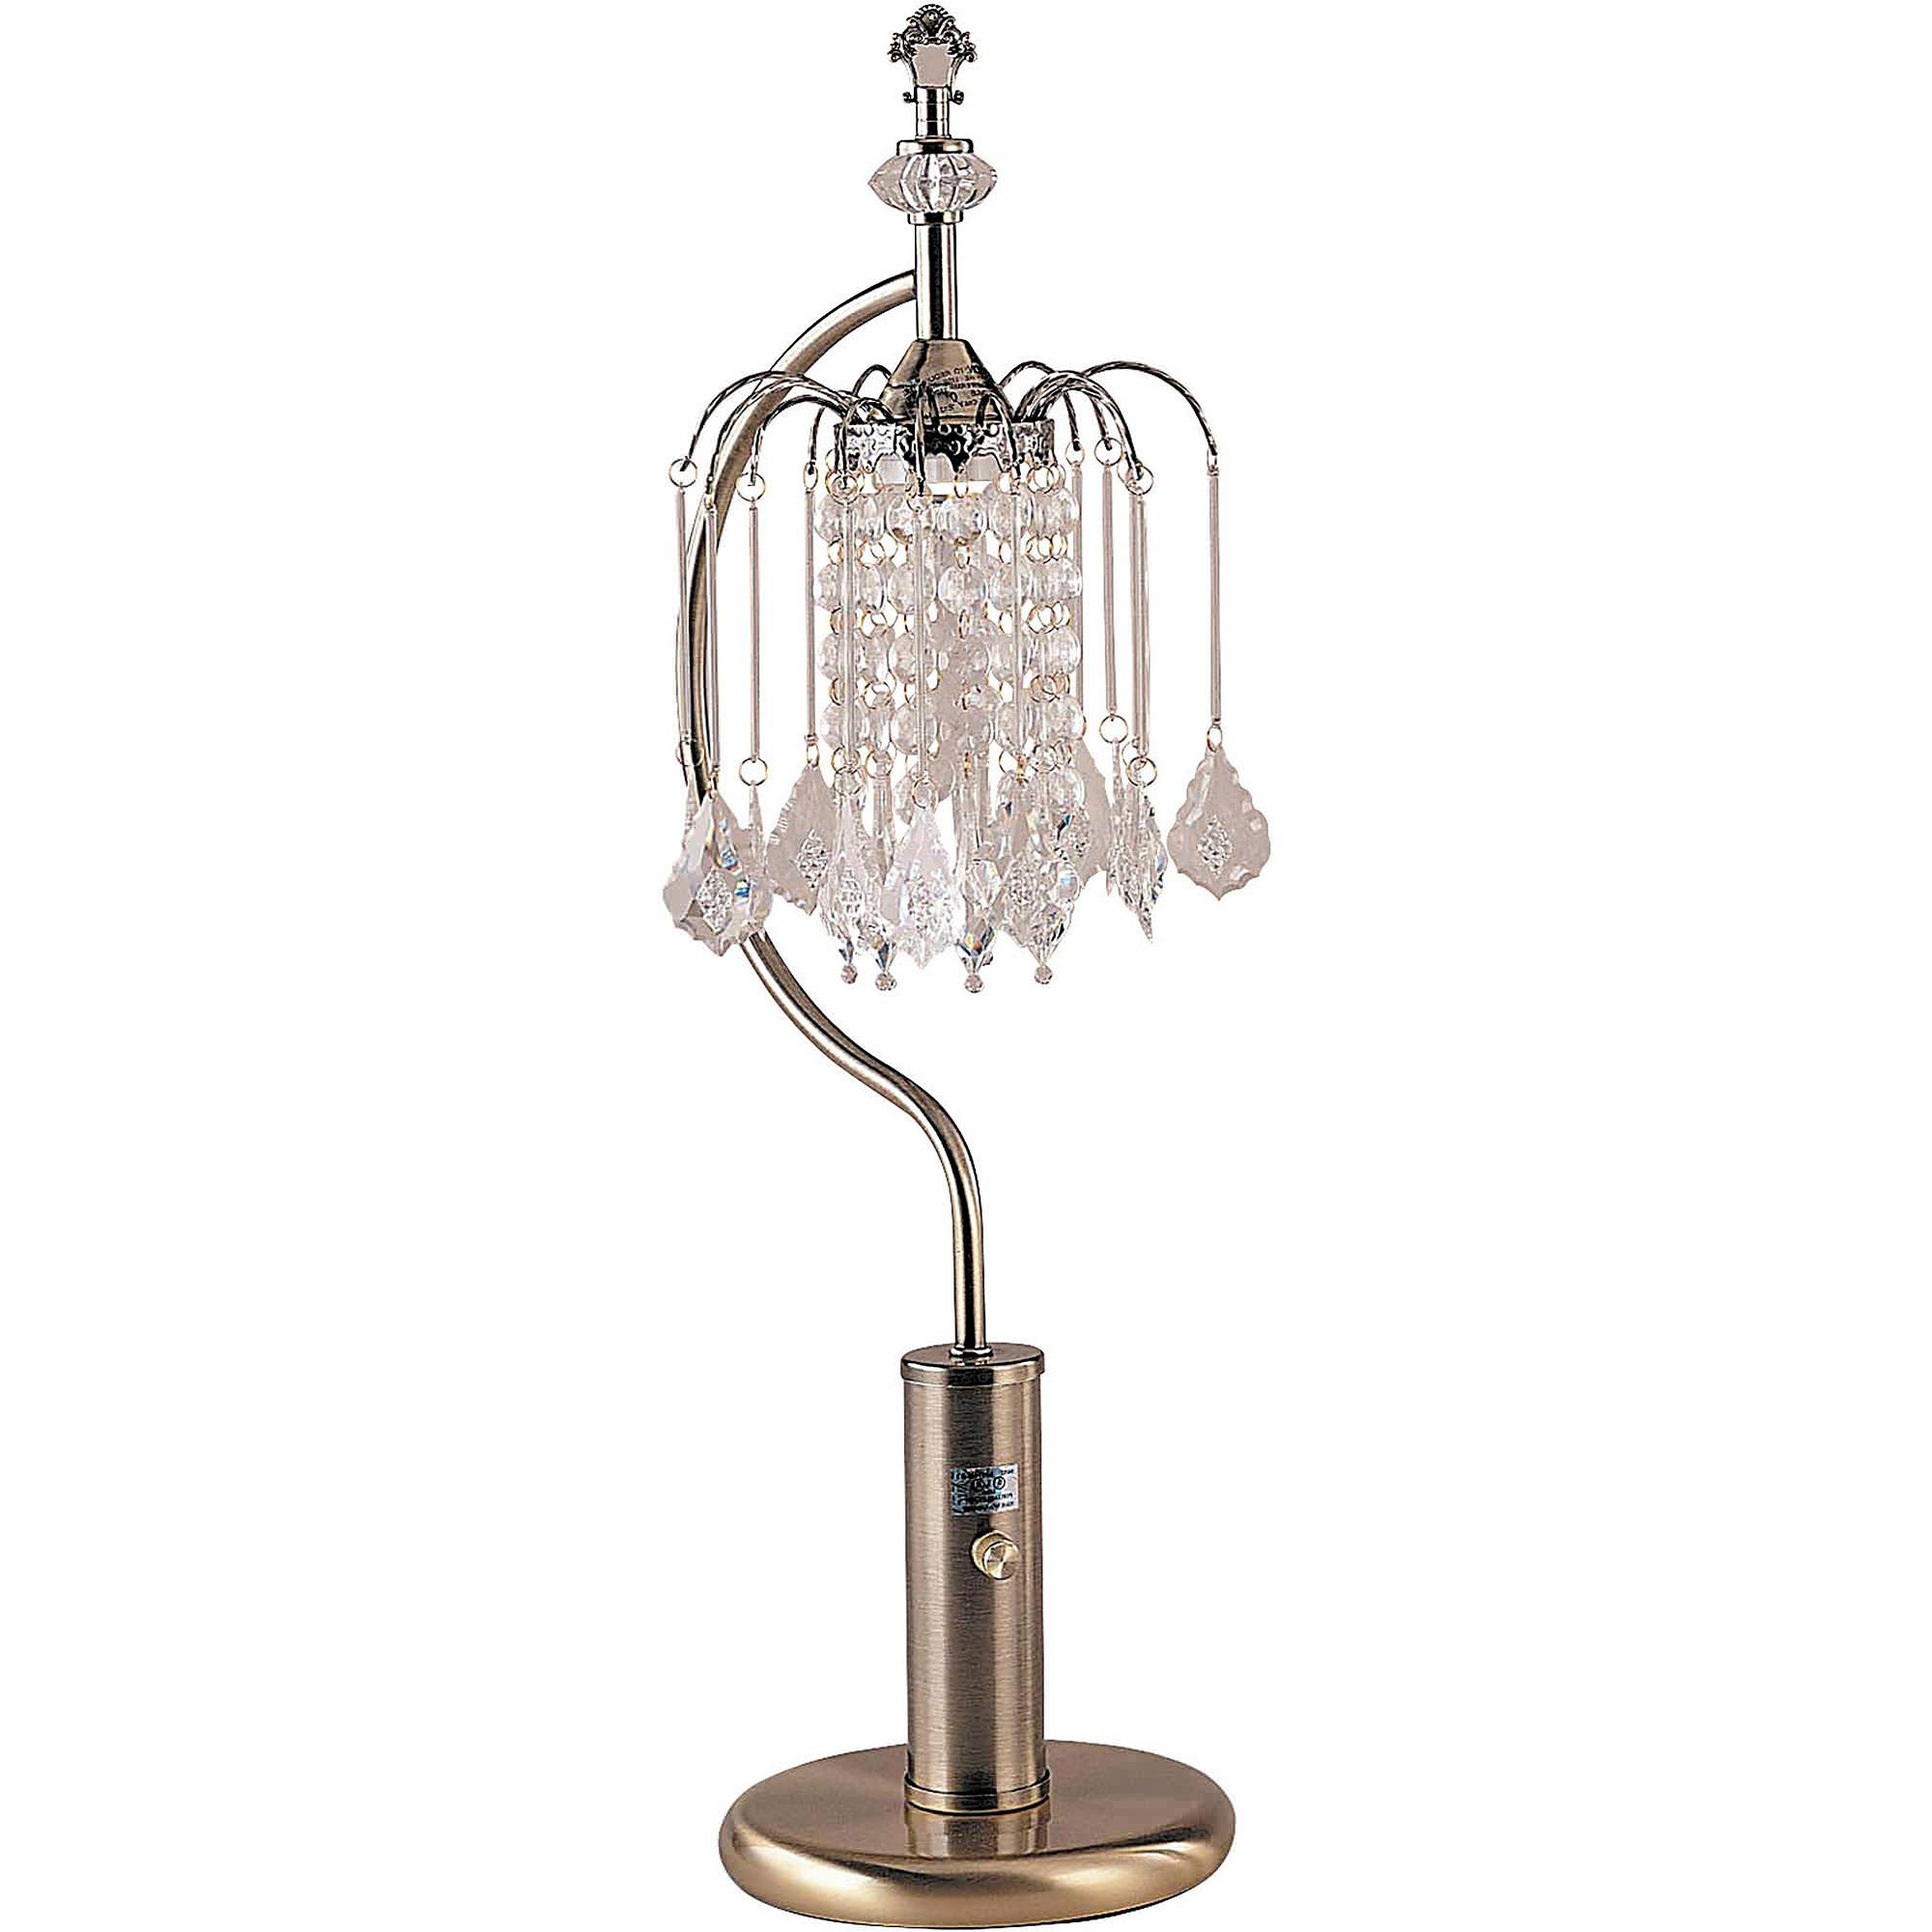 Black Table Lamp Chandelier Madison Brightech Floor Lamp With Intended For Crystal Table Chandeliers (Image 3 of 15)